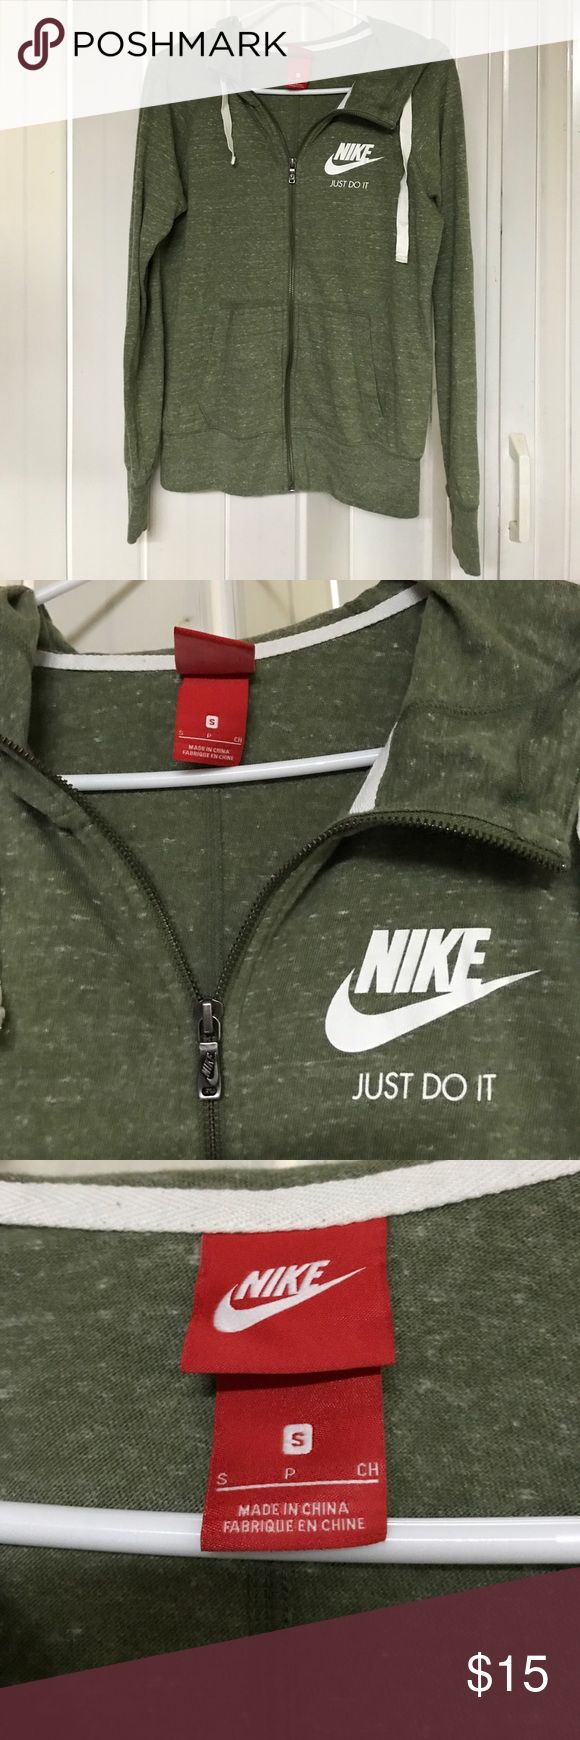 Nike zip up thin hoodie Marbled sage green Nike zip up t-shirt thin hoodie. Beige hoodie string and has a slight cowl at the neck. Perfect condition, worn once and washed once. Just a little short for my long arms! Nike Tops Sweatshirts & Hoodies